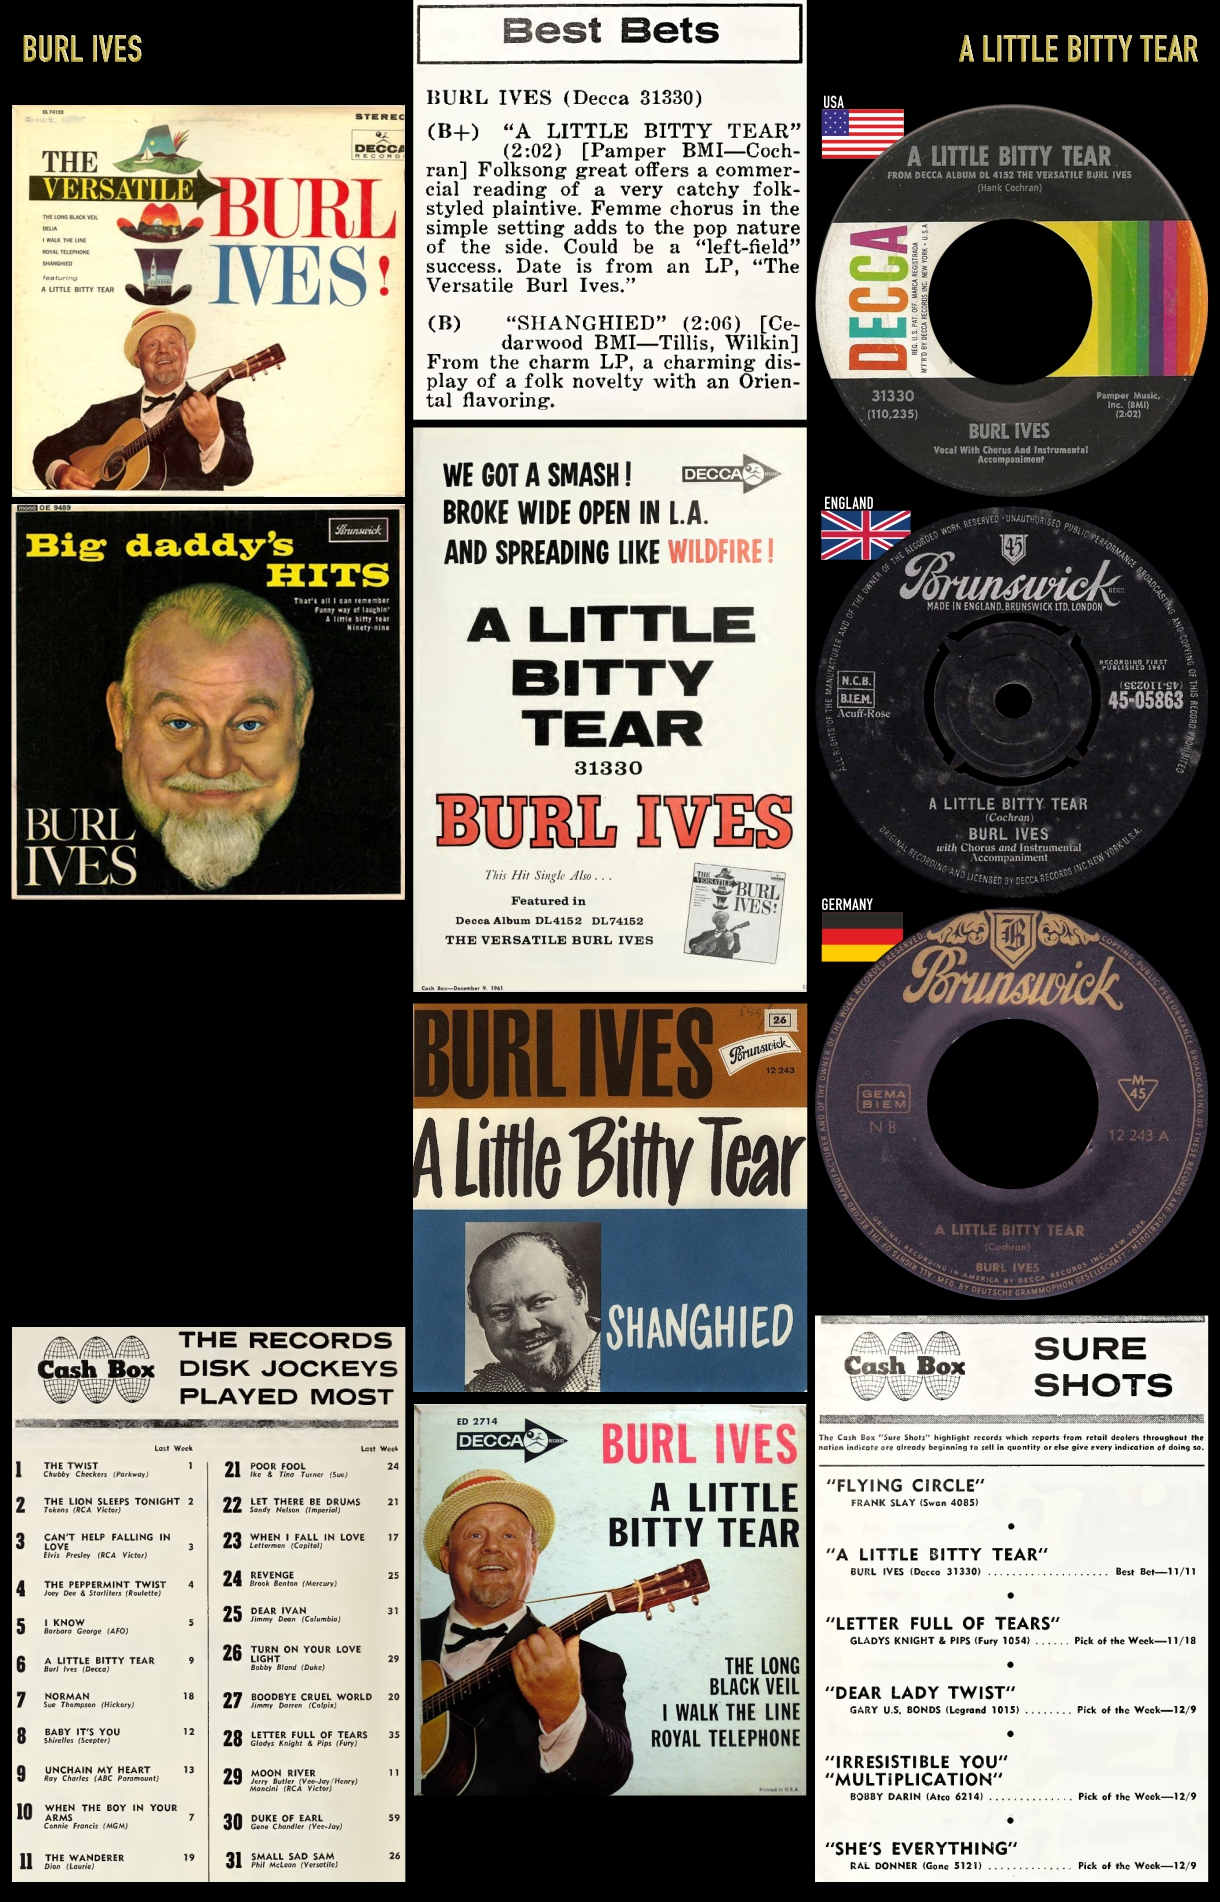 611216_Burl Ives_A Little Bitty Tear